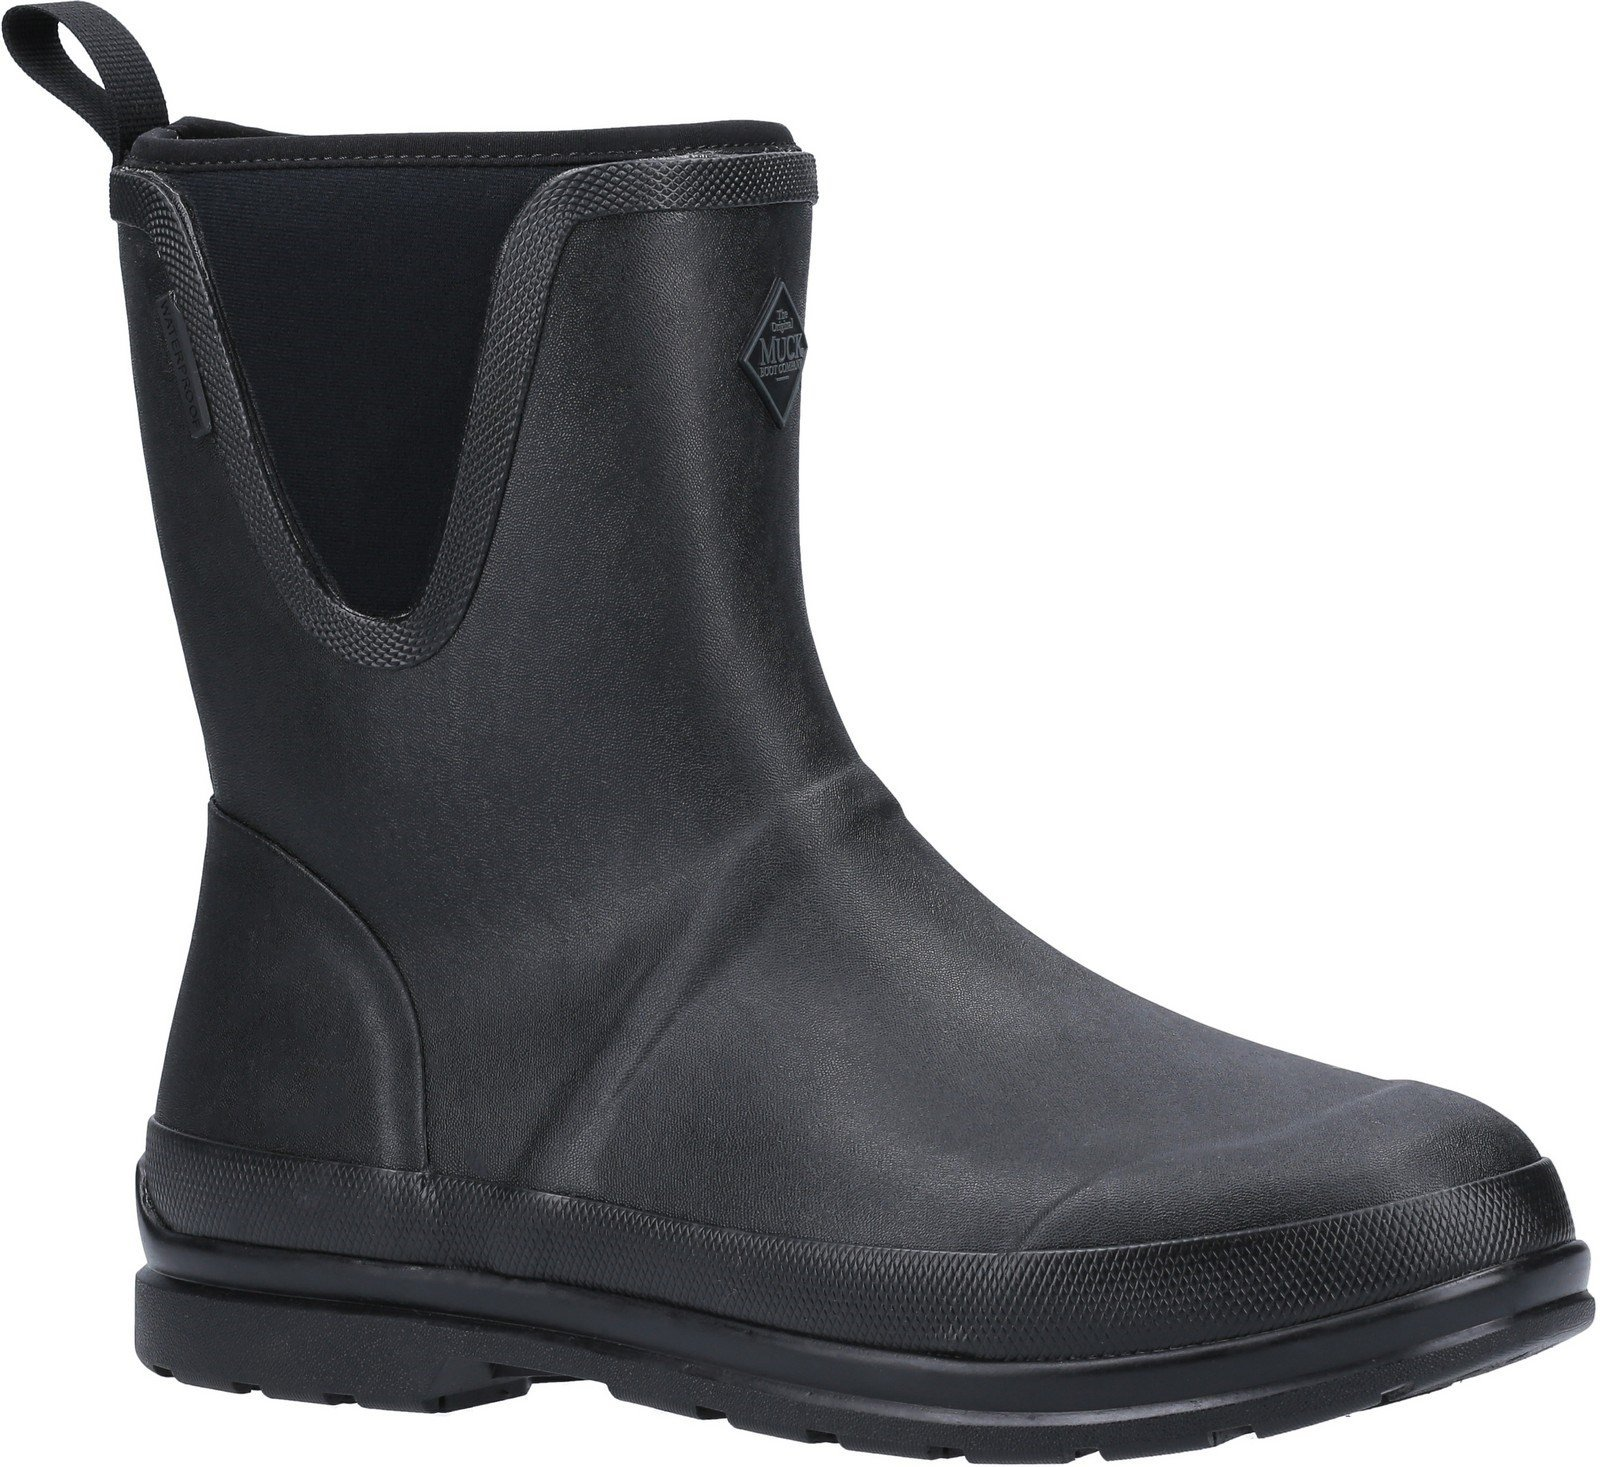 Muck Boots Unisex Originals Pull On Mid Boot Various Colours 30078 - Black 4